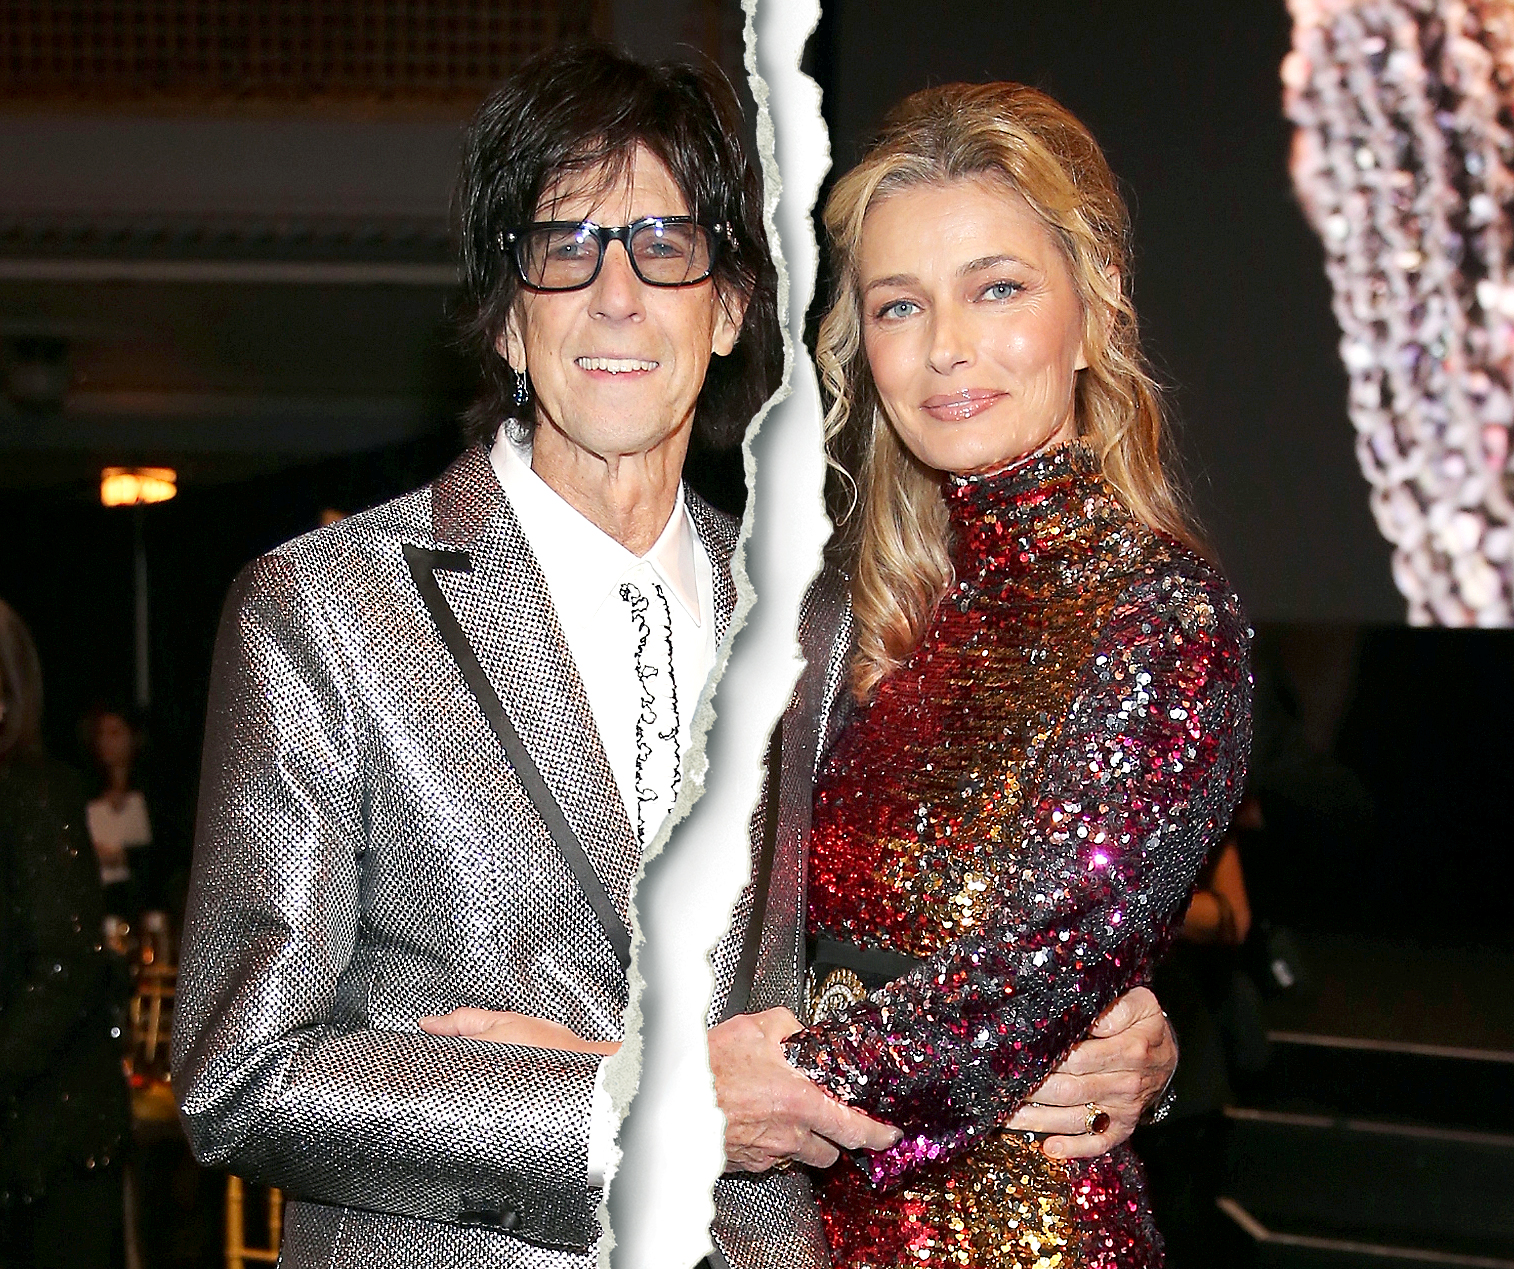 Ric Ocasek & Paulina Porizkova We're Separated After 28 Years of Marriage